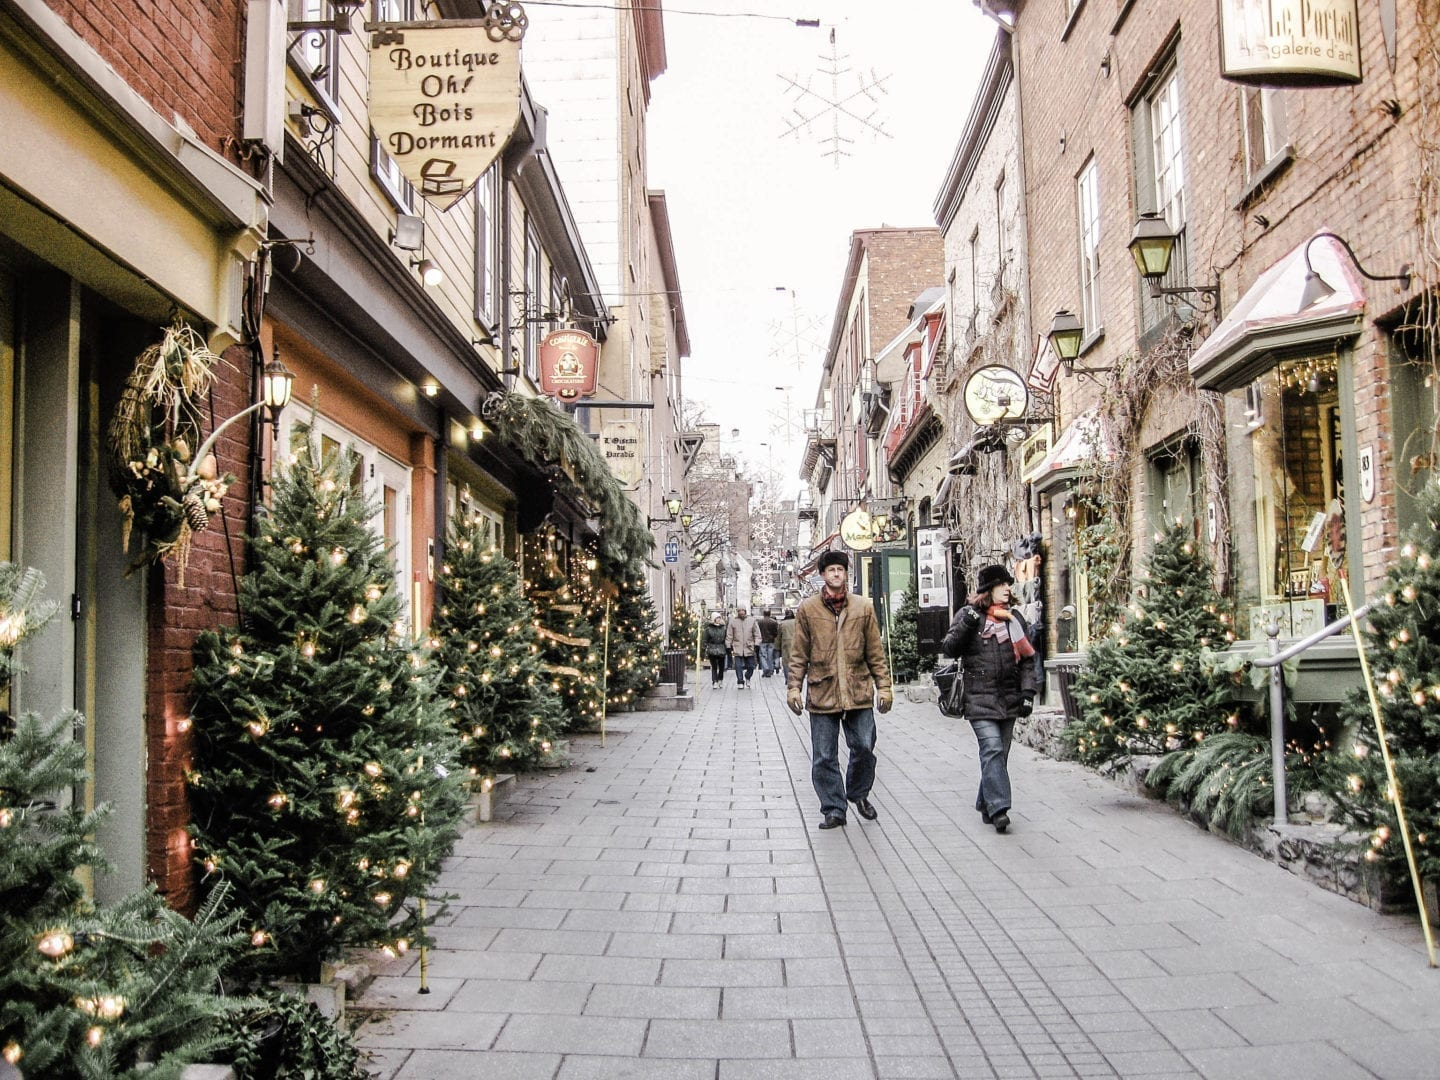 Old Québec City – A Quaint Historic Town Decorated for Christmas